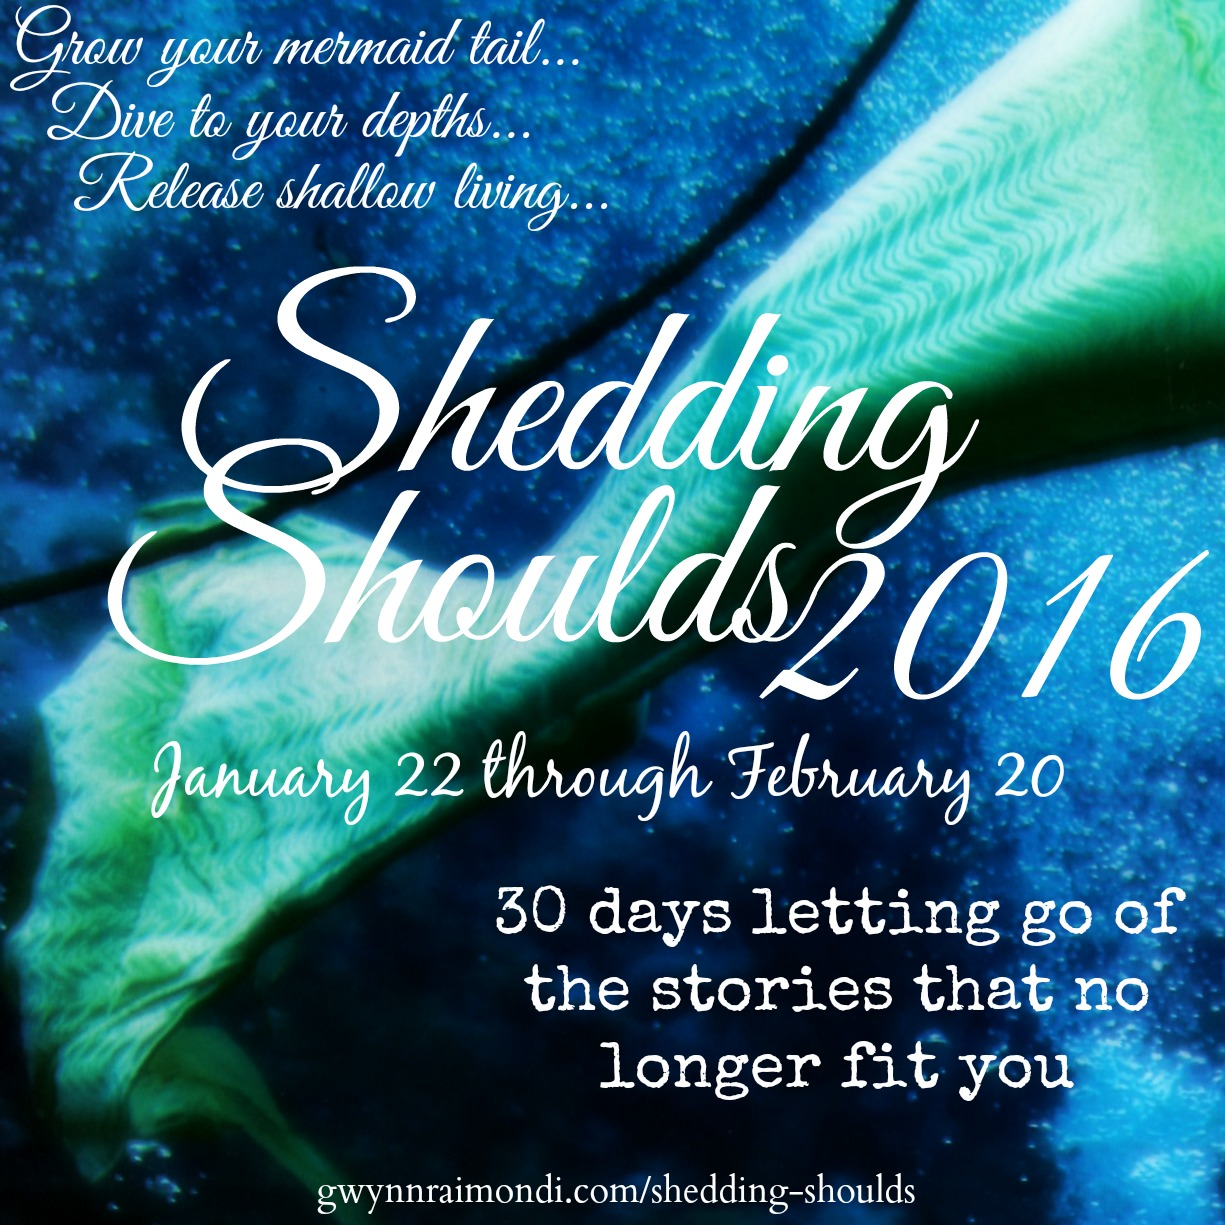 shedding shoulds 2016